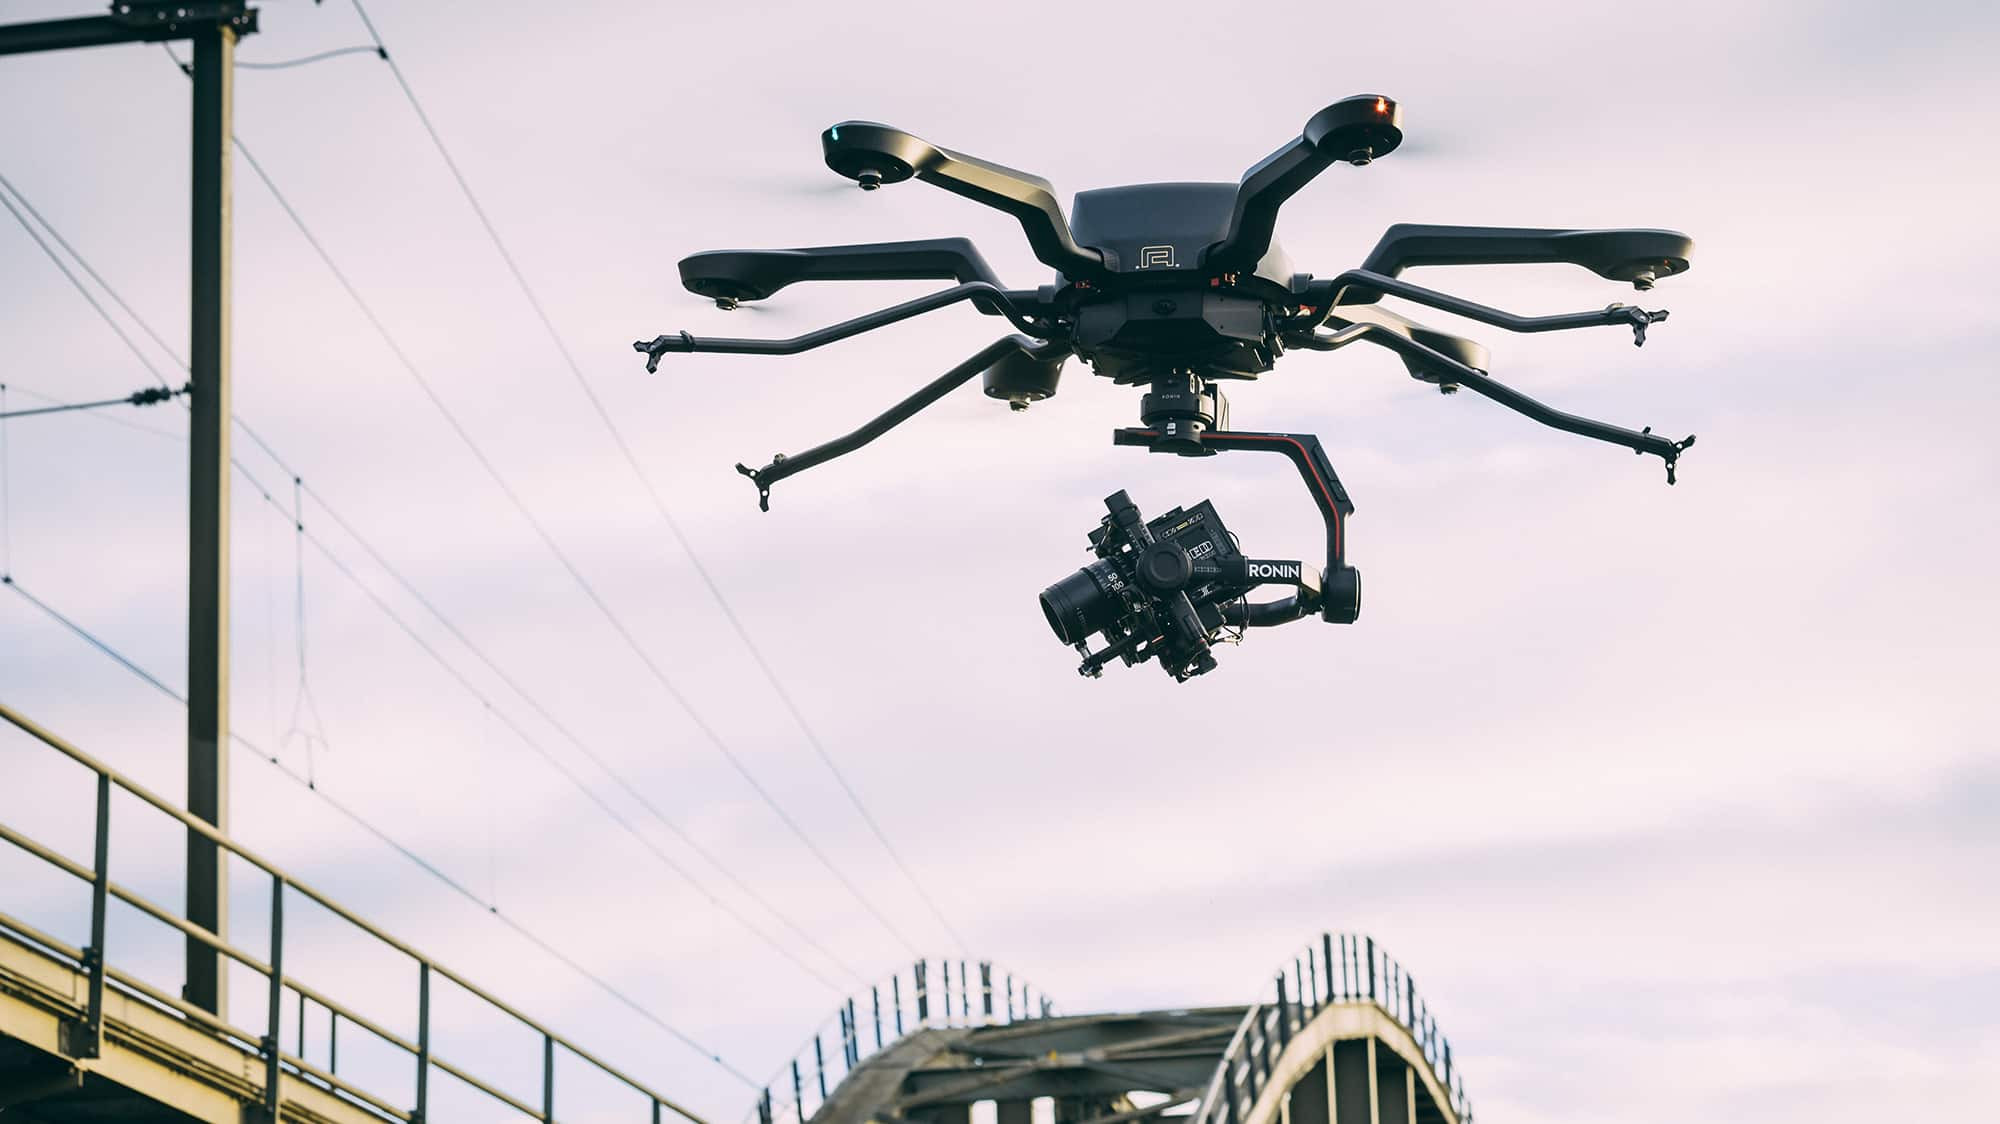 Acecore Releases Persistent Heavy-Lift Hexacopter Drone   Unmanned Systems Technology